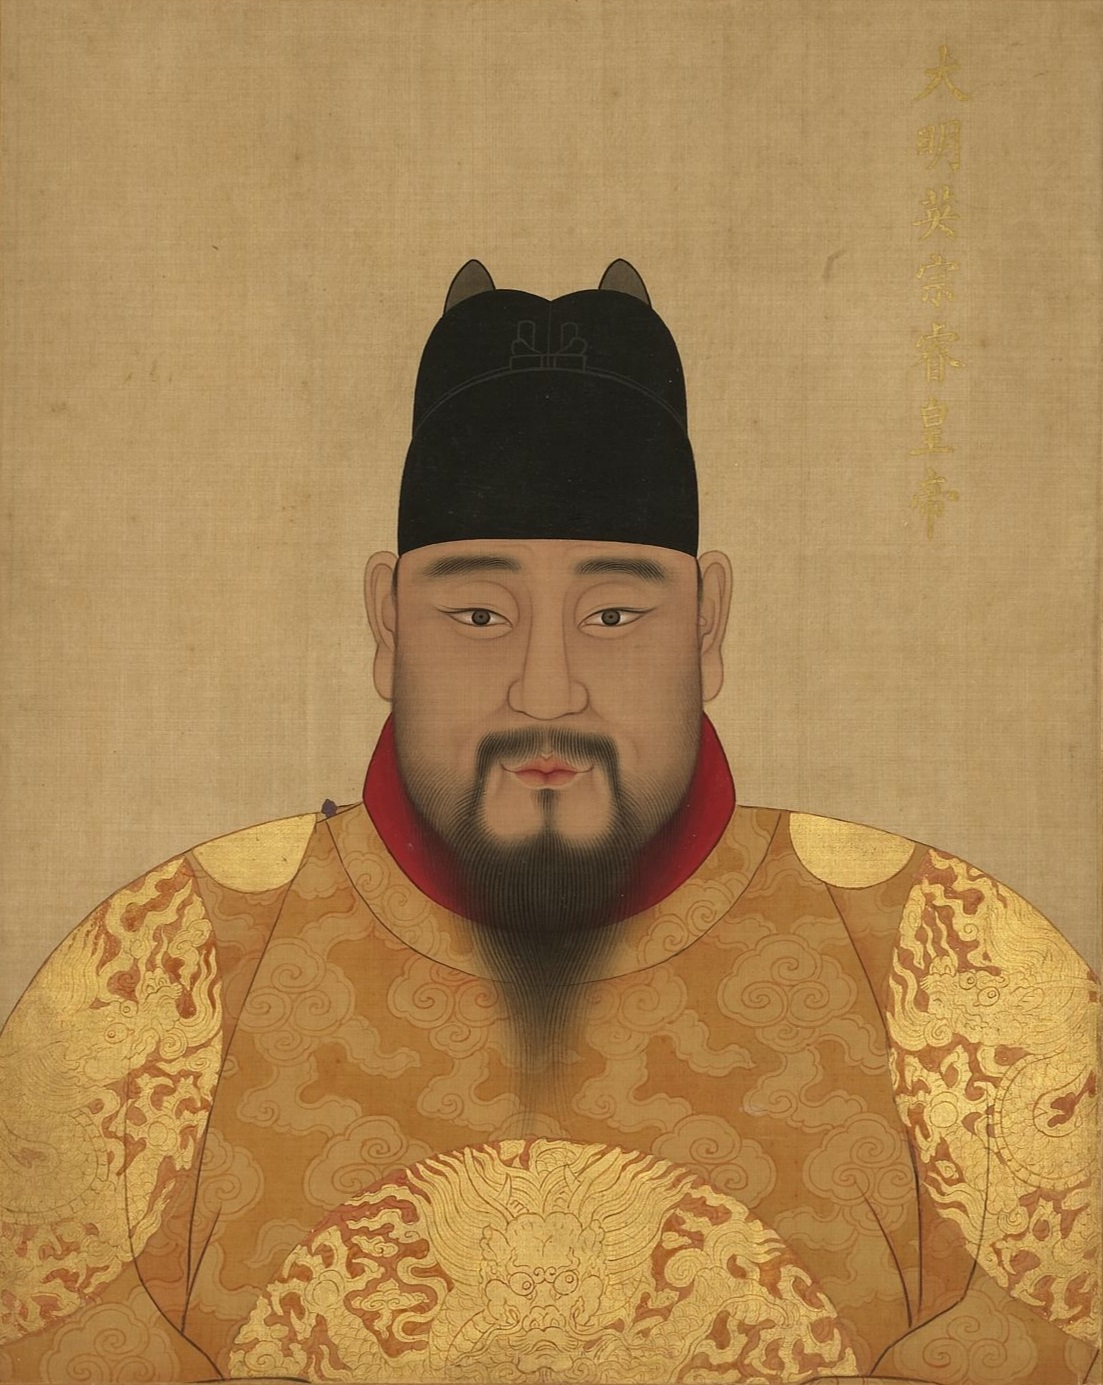 The Emperor Seven Tarot Cards From Different Packs Other: Emperor Yingzong Of Ming